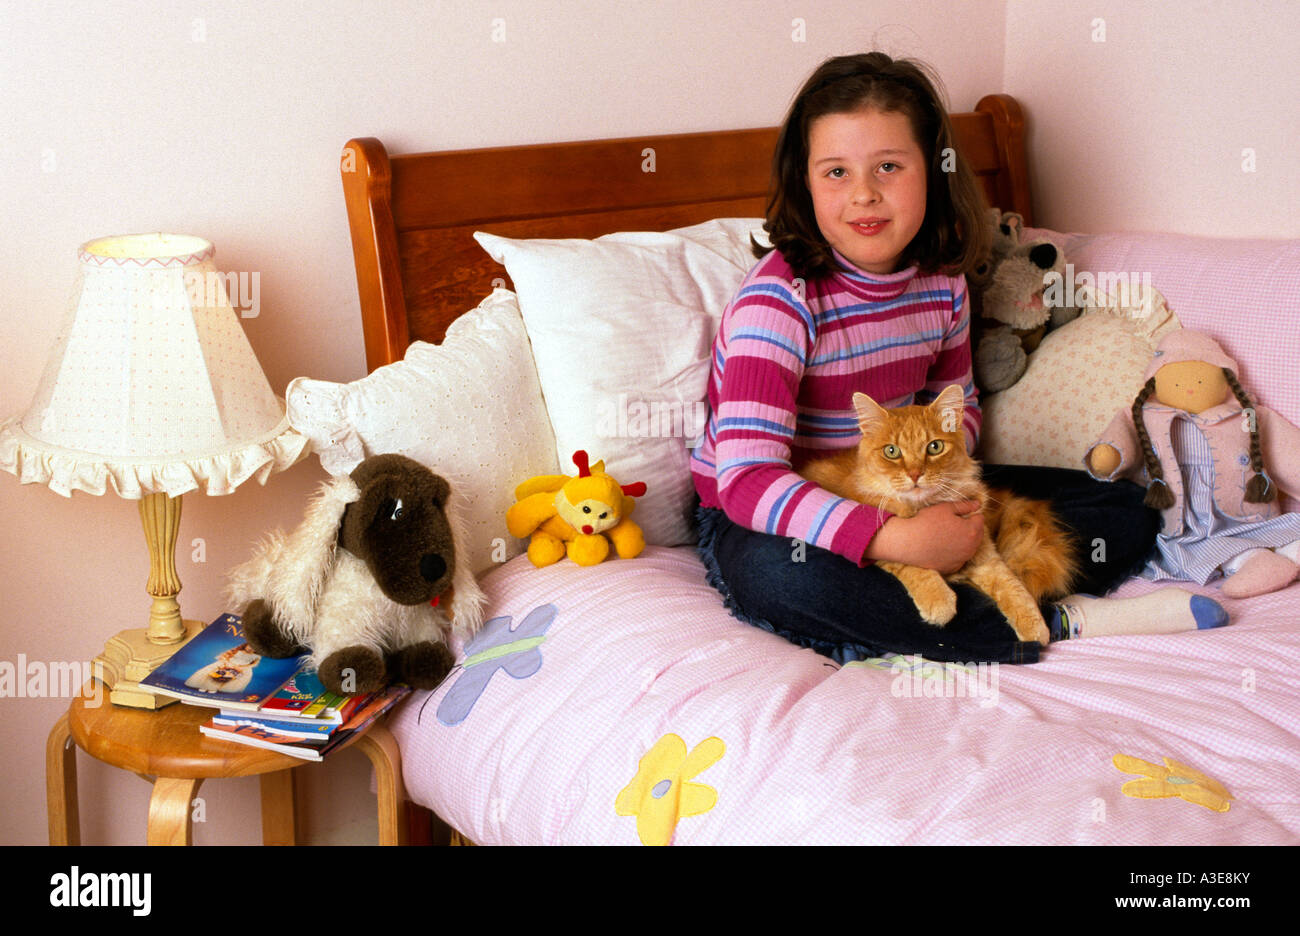 7 year old girl with her pet cat Melbourne Victoria Australia Horizontal  - Stock Image